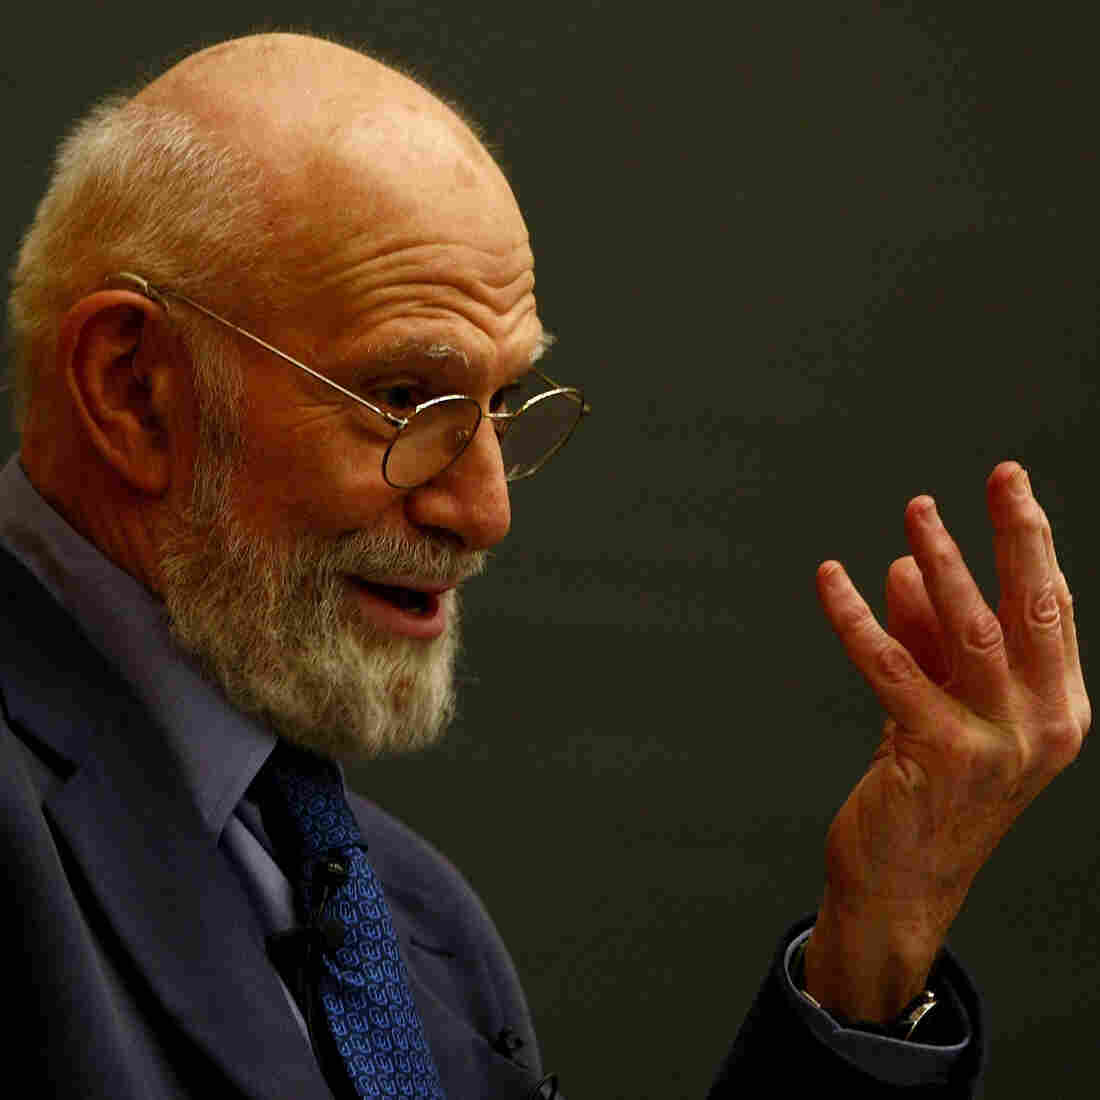 Oliver Sacks in 2009 at Columbia University